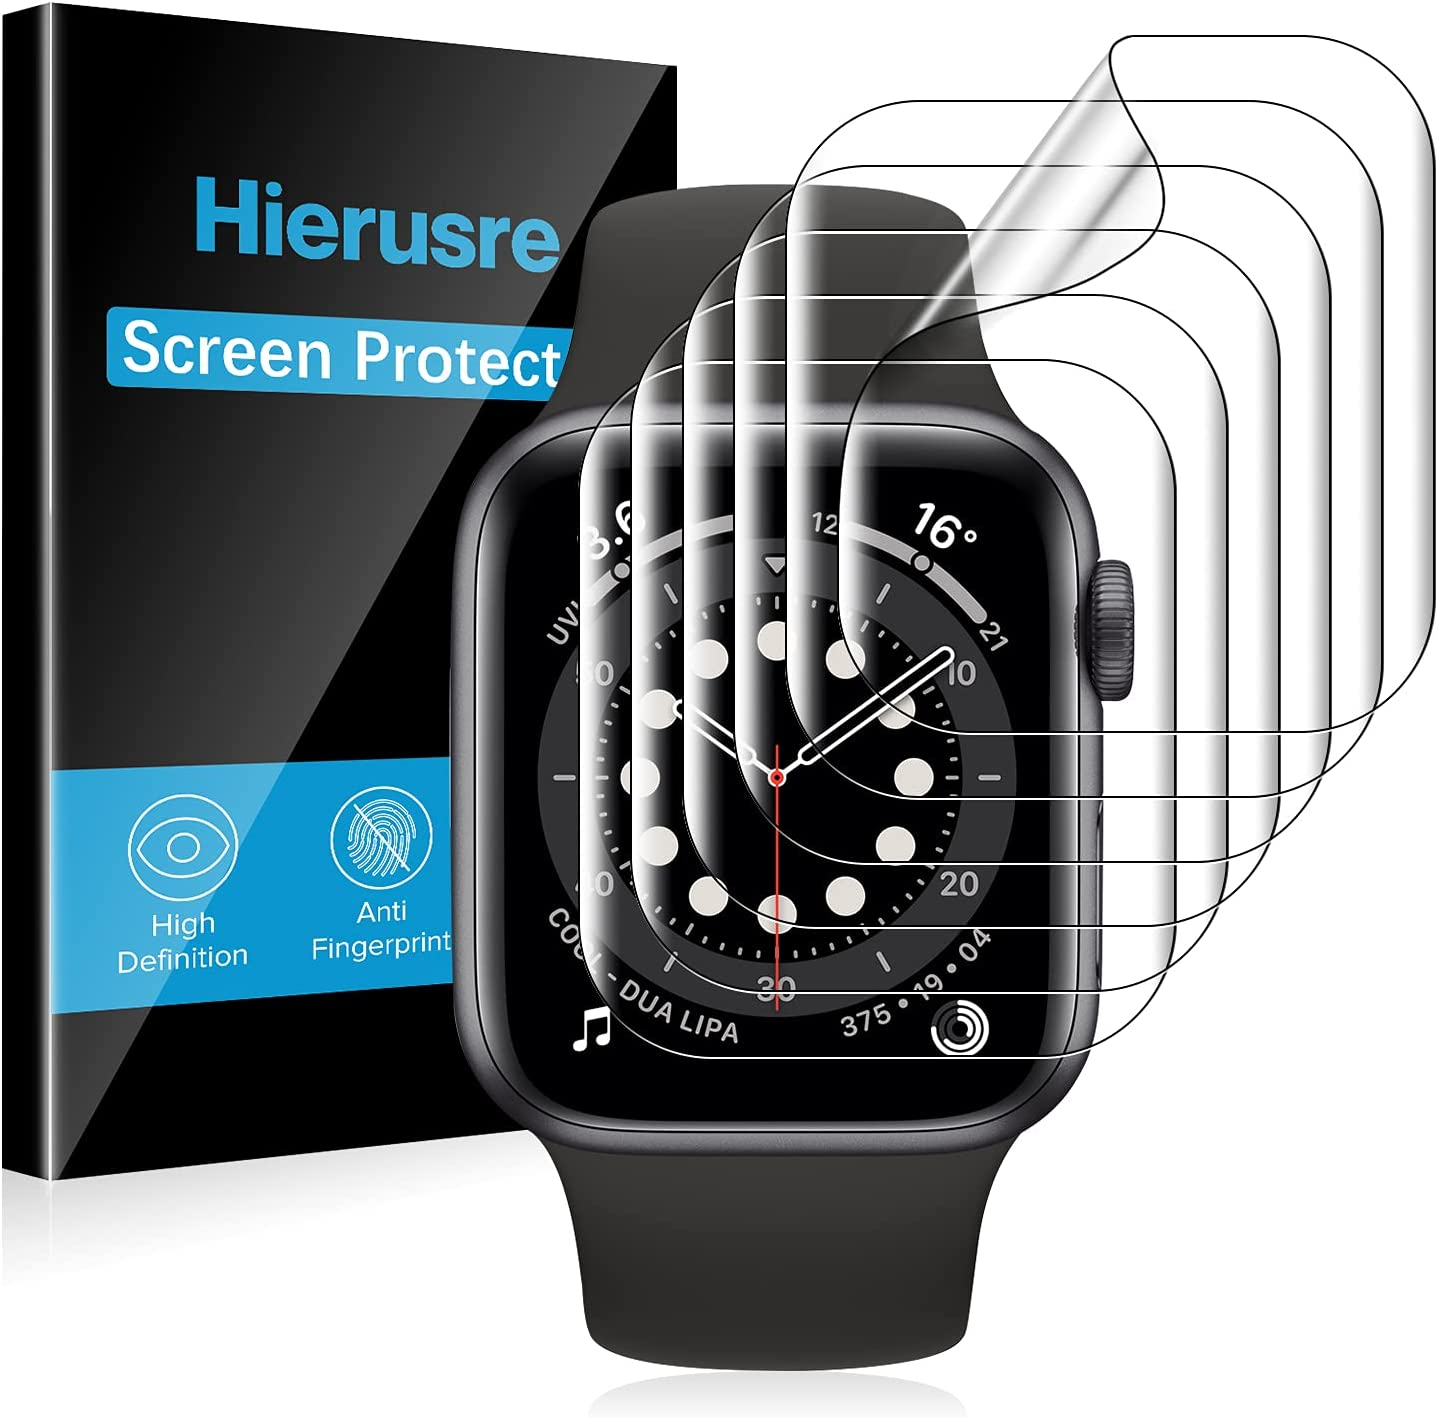 [6 Pack] Hierusre Screen Protector Compatible with Apple Watch Series SE/6/5/4 44mm and Series 3/2/1 42mm, Apple Watch TPU Film iWatch Cover, Bubble-Free HD Clear Anti-Peel (44mm/42mm)